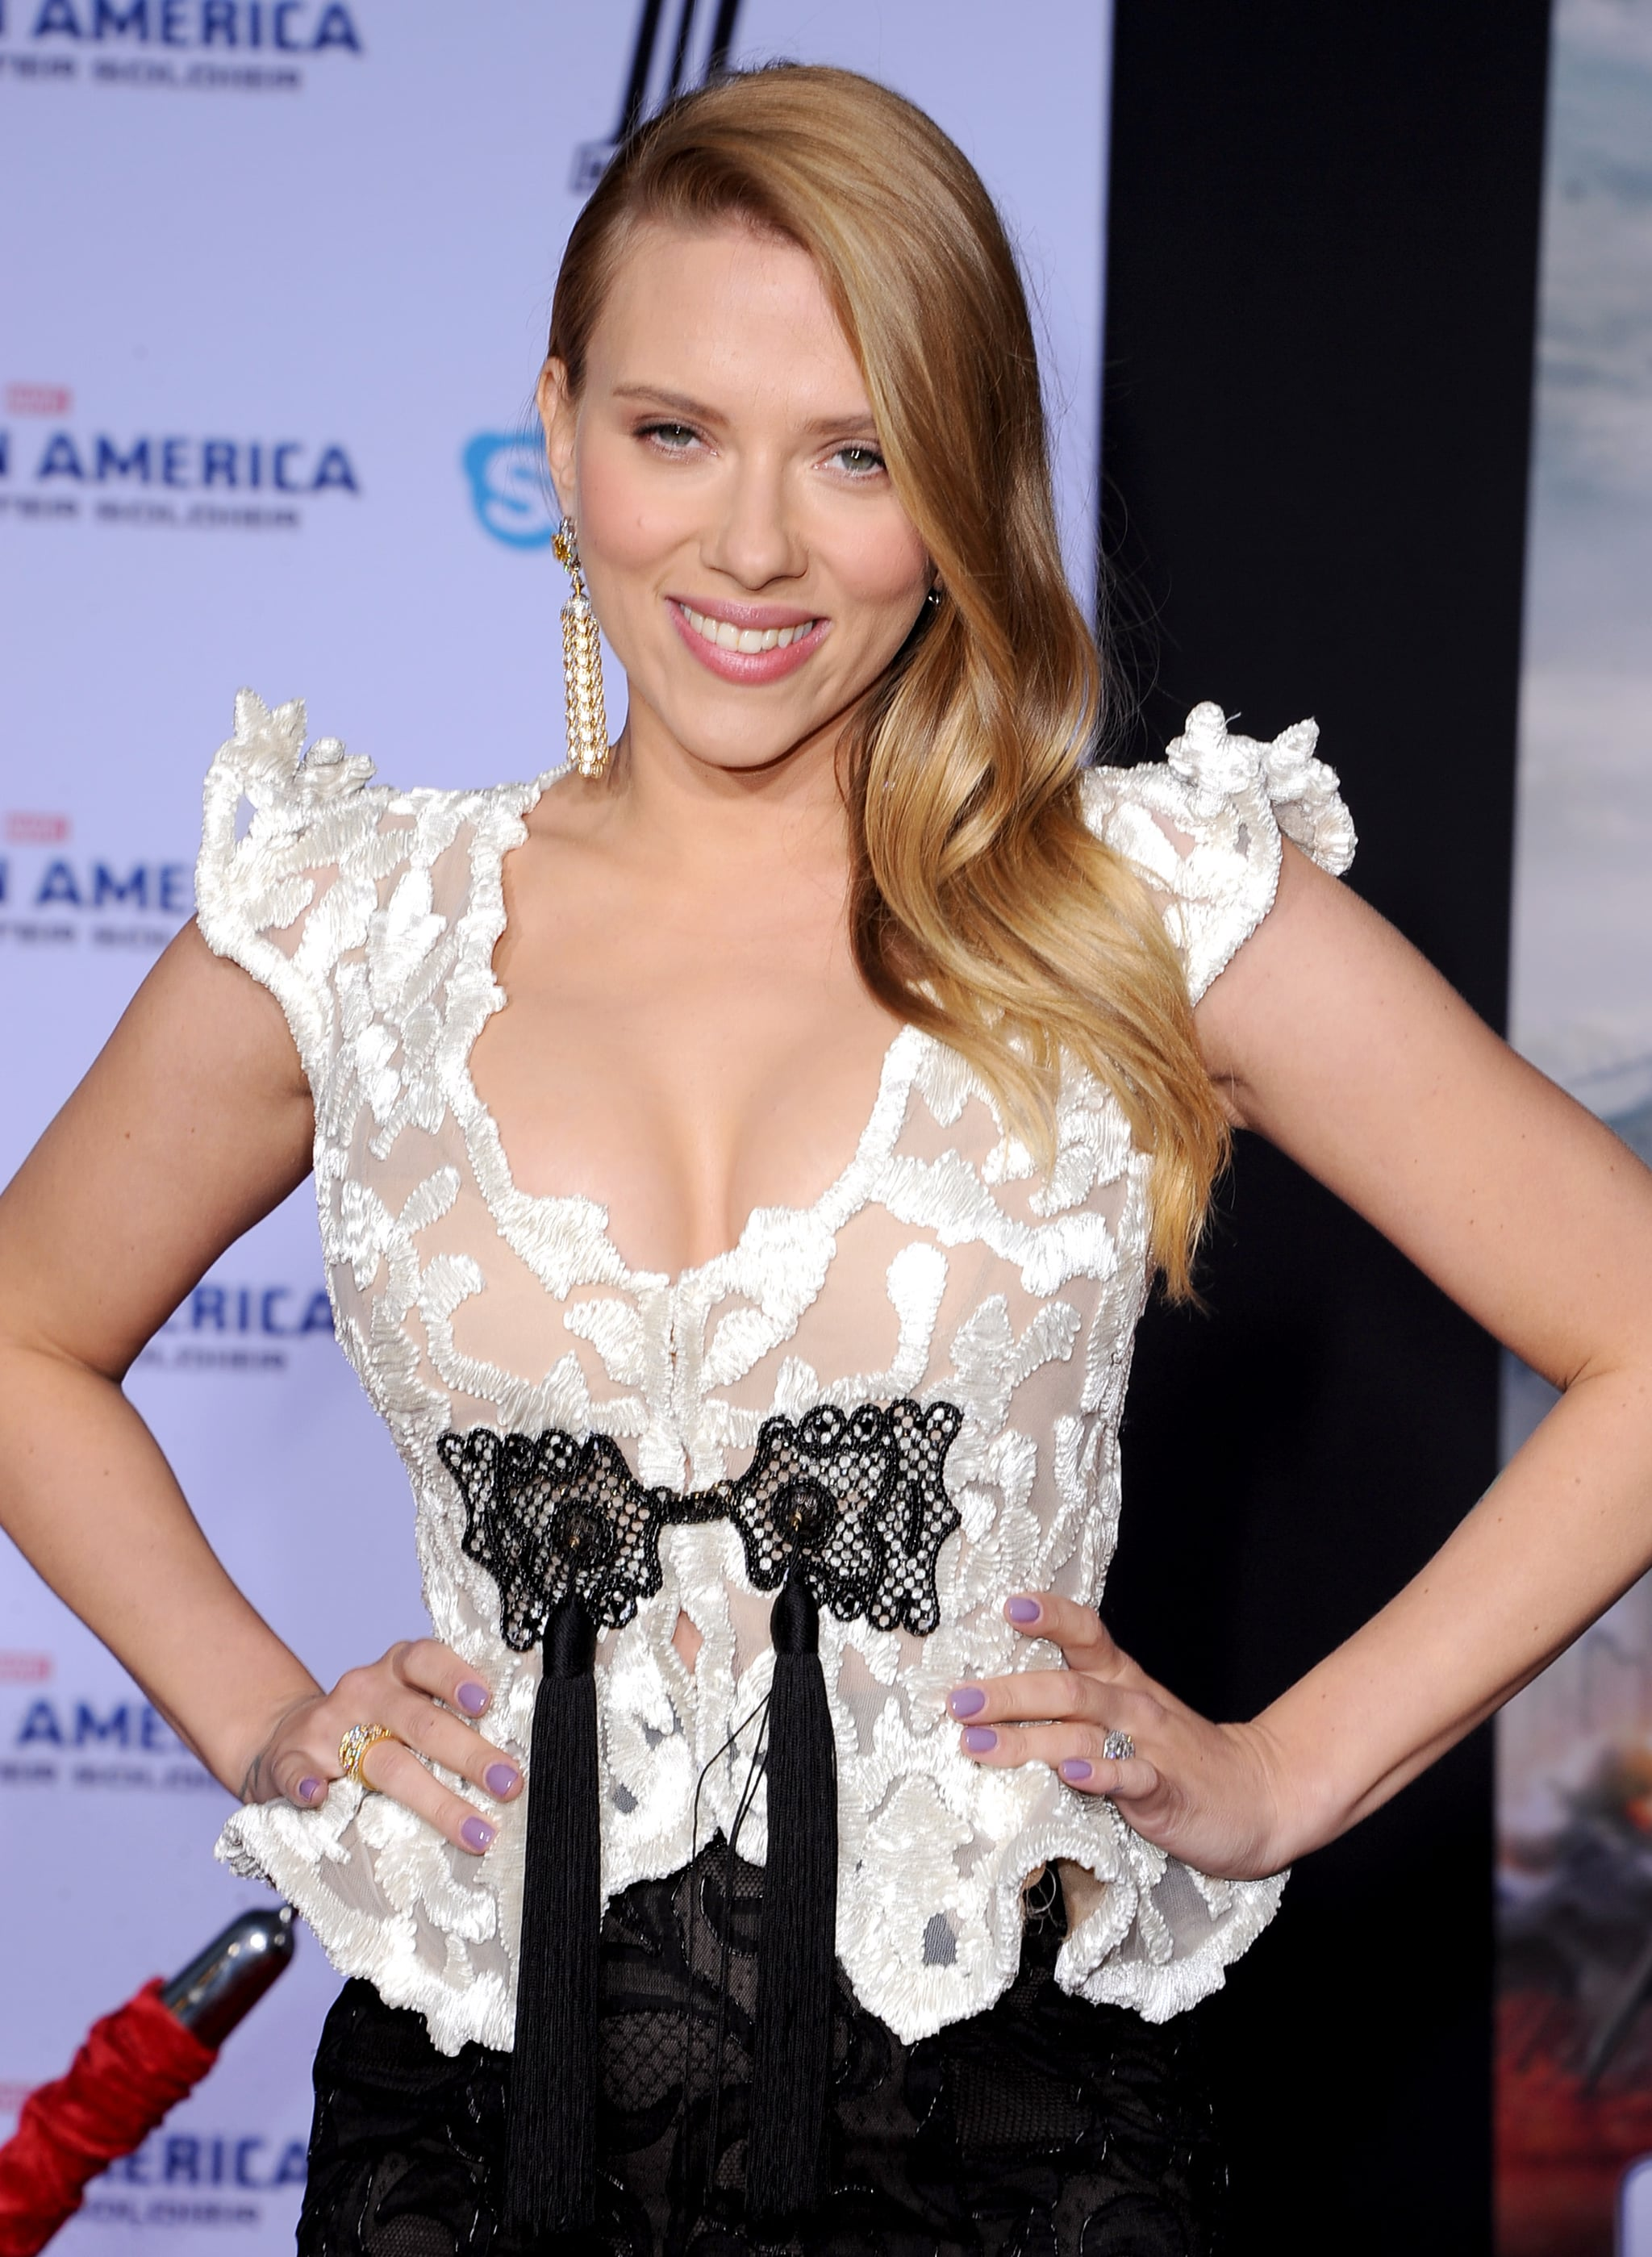 Scarlett Johansson took the red carpet by storm at the world premiere of Captain America: The Winter Soldier in LA on Thursday night, flashing her megawatt smile as fans screamed her name.